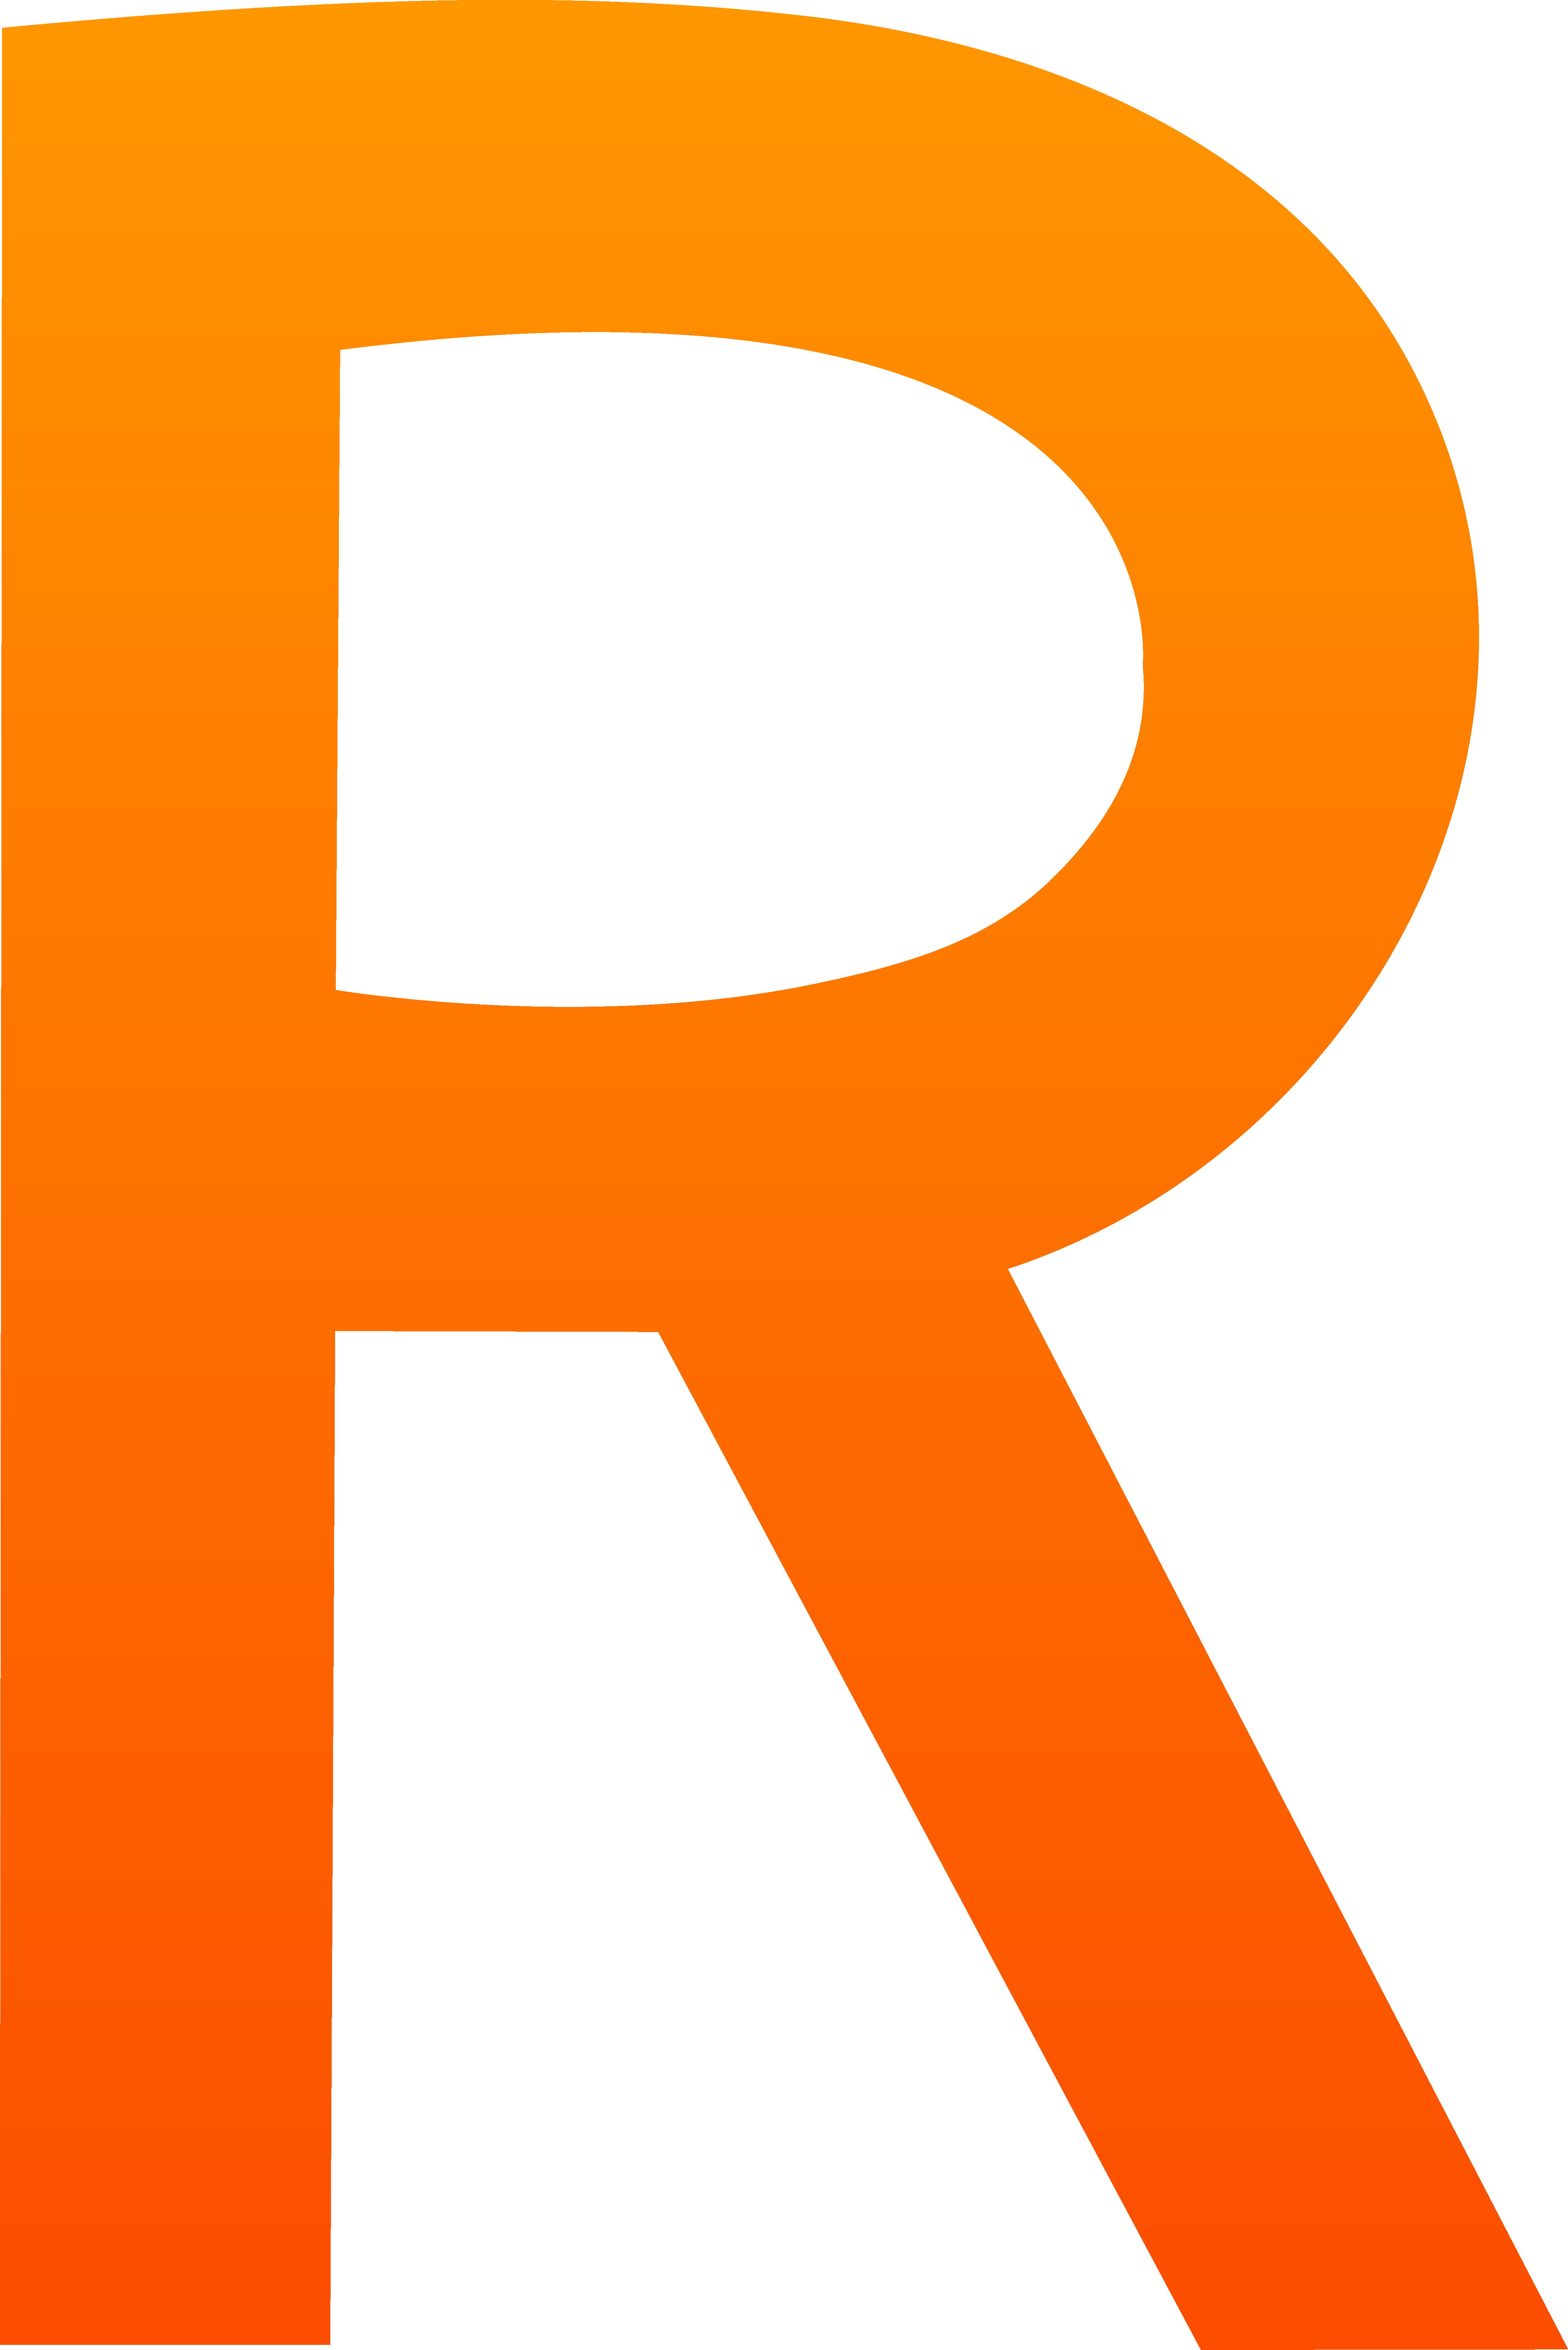 The Letter R.